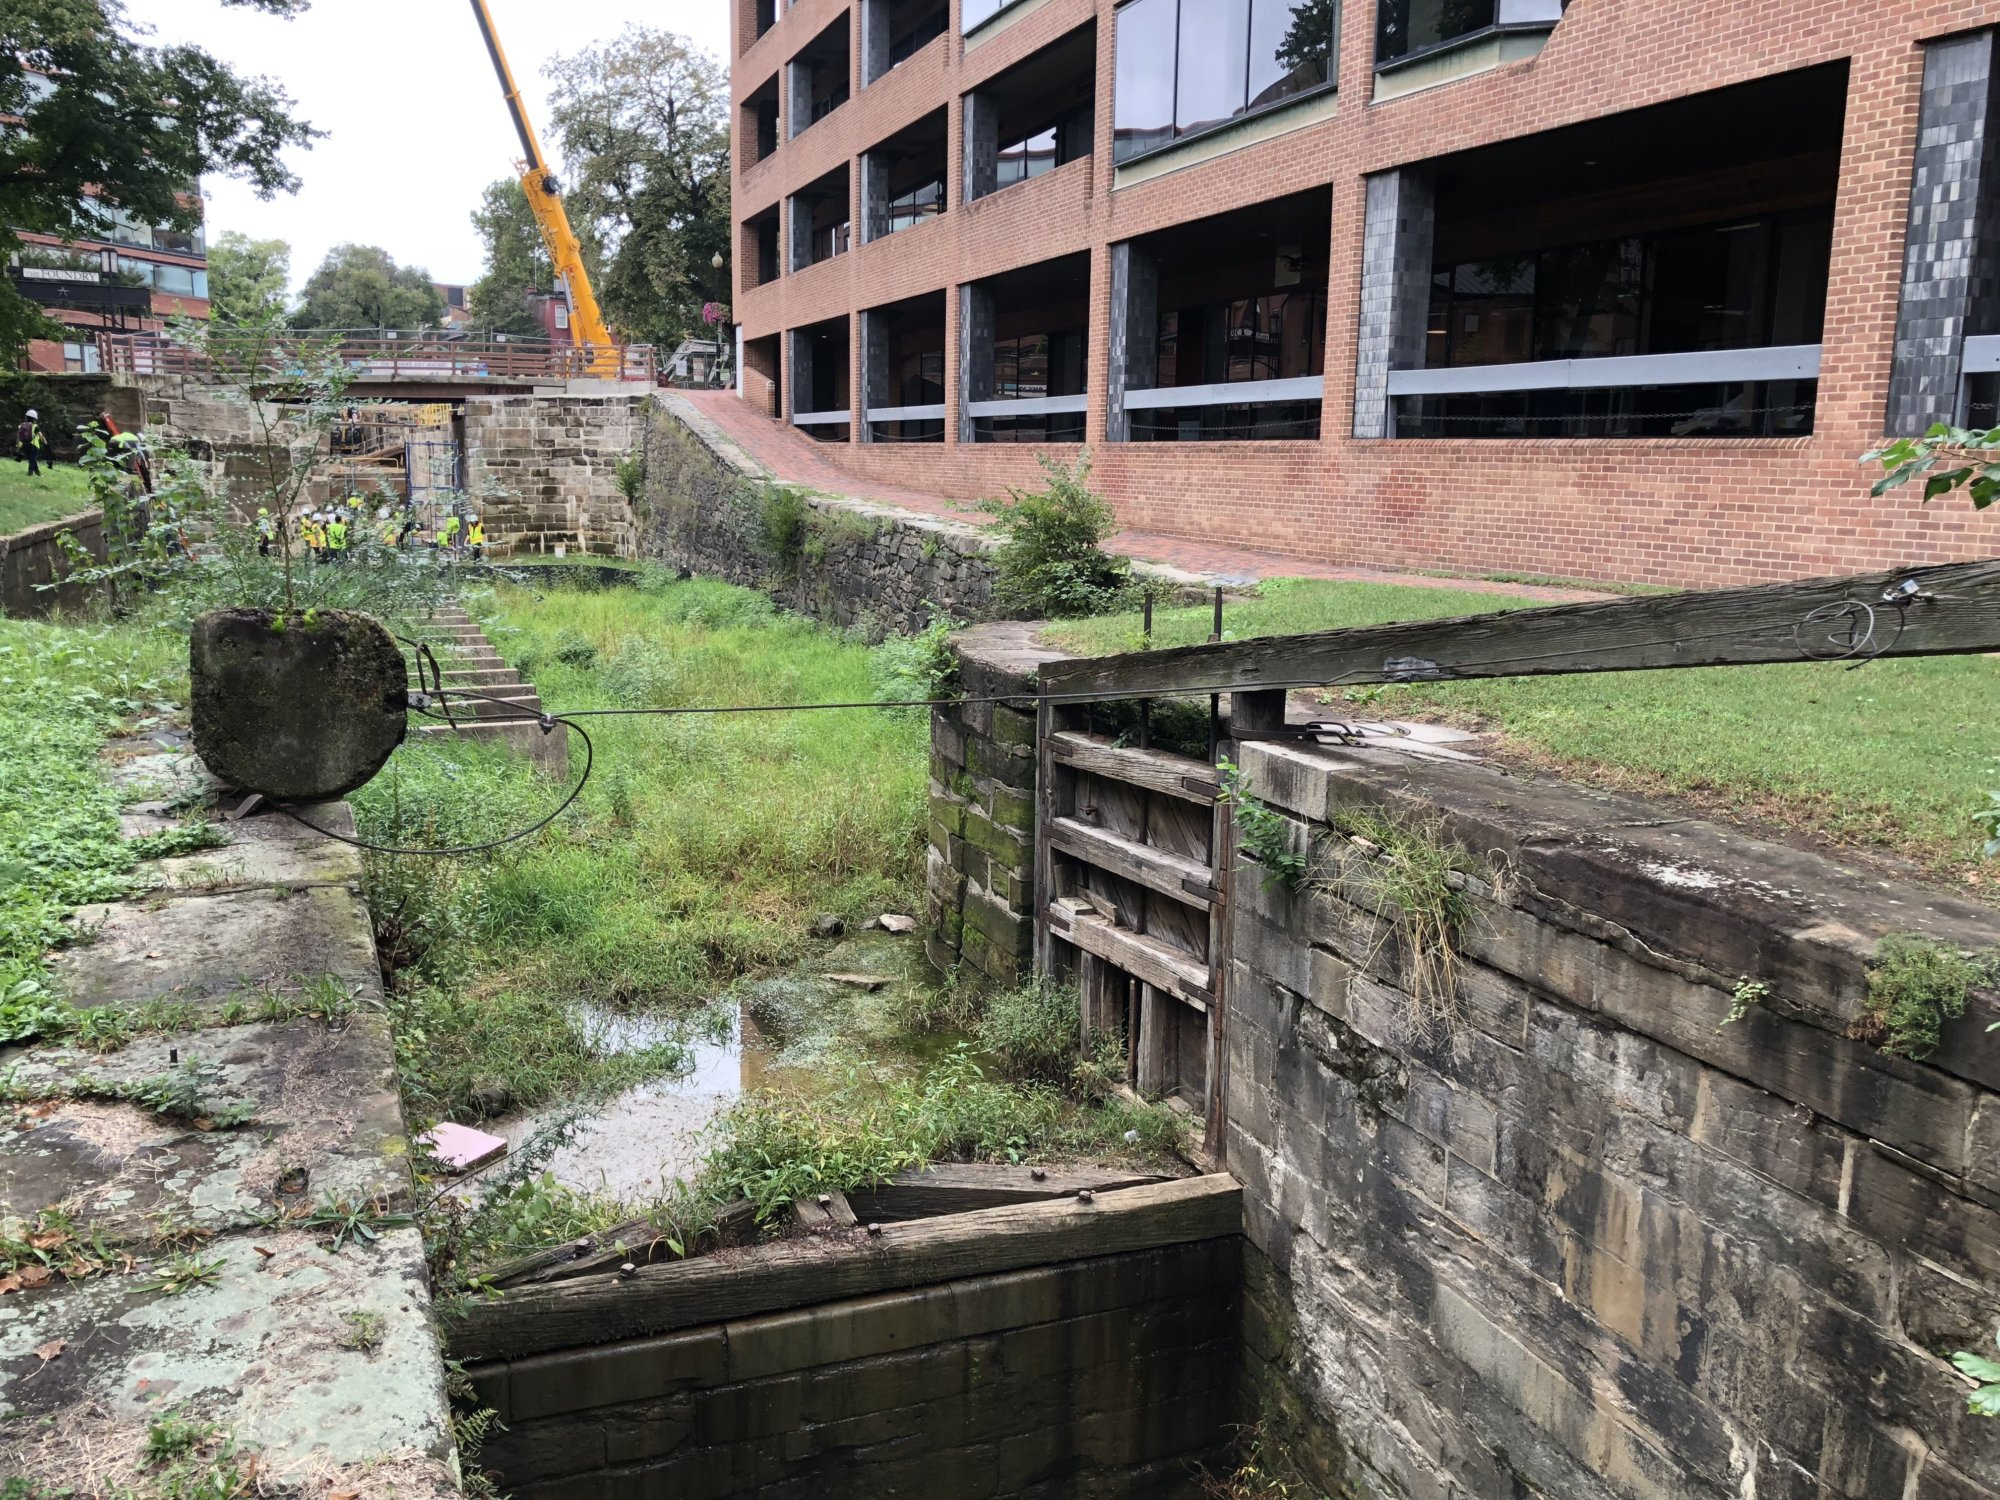 National Park Service wants your feedback on Georgetown Canal plan